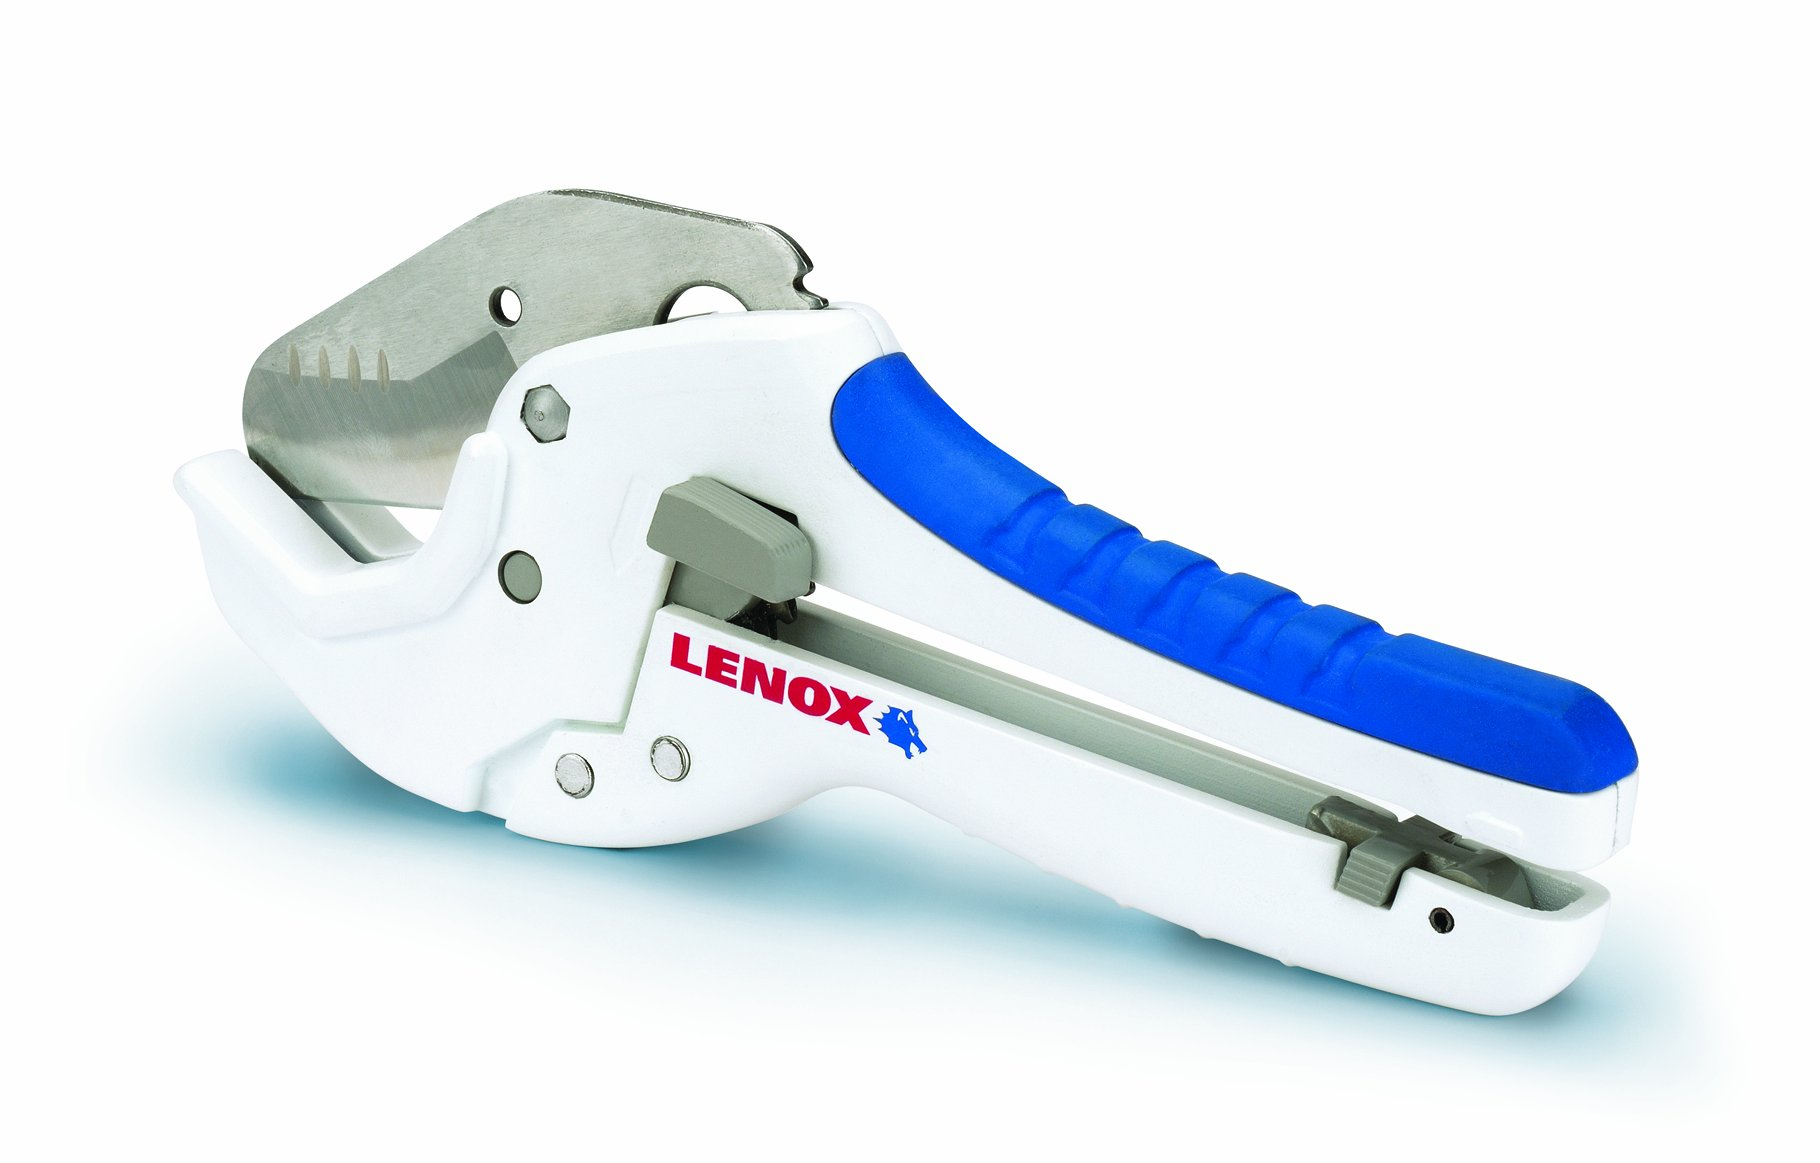 Lenox Industrial Tools 12123 R1 PVC Cutter Upto 1-5/8-Inch Ratcheting Cut by Lenox Tools